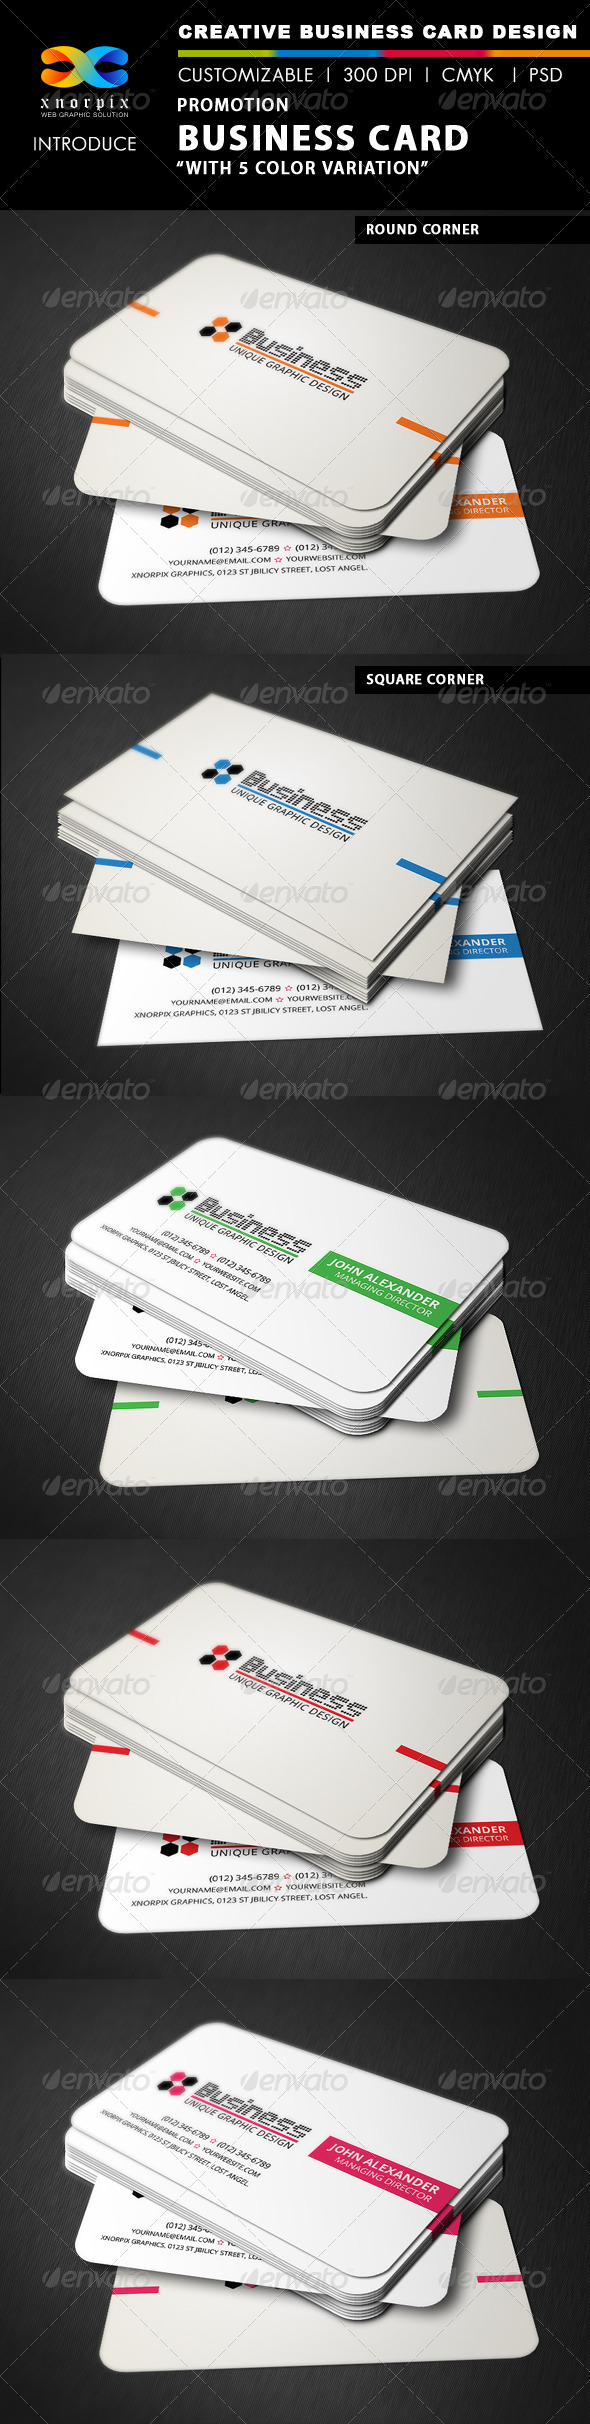 GraphicRiver Promotion Business Card 3465624